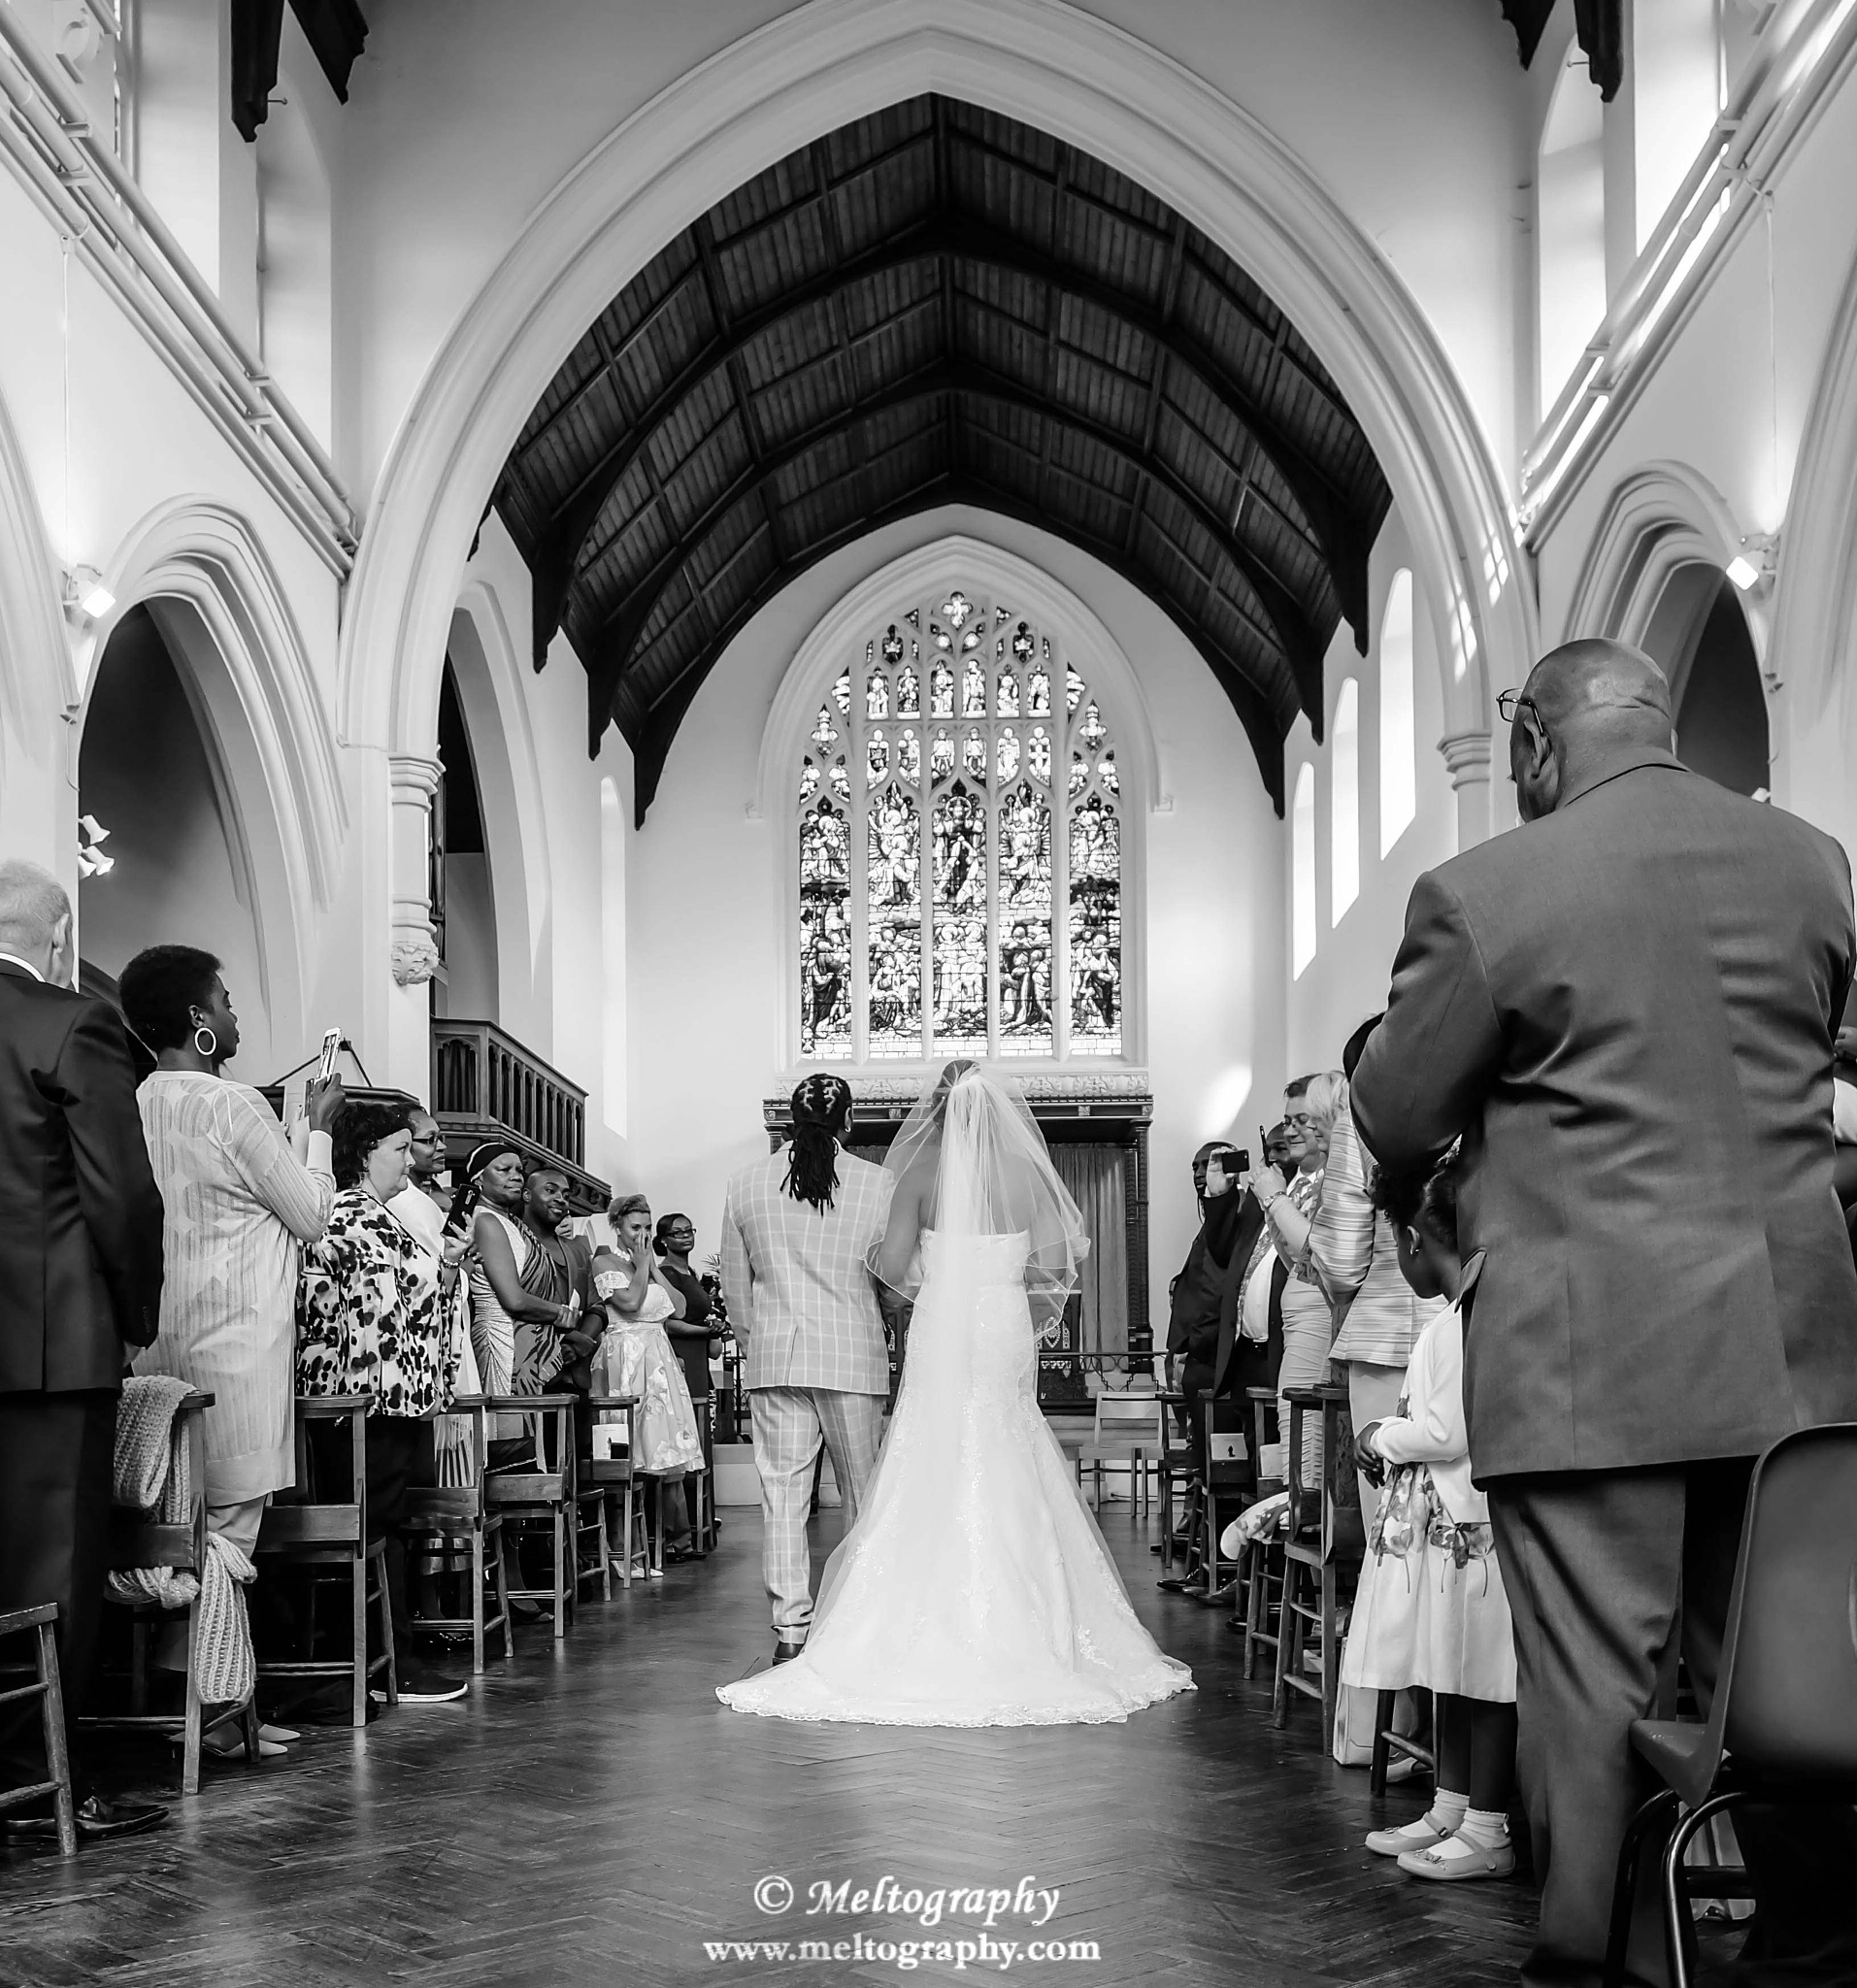 There Goes The Bride by meltography